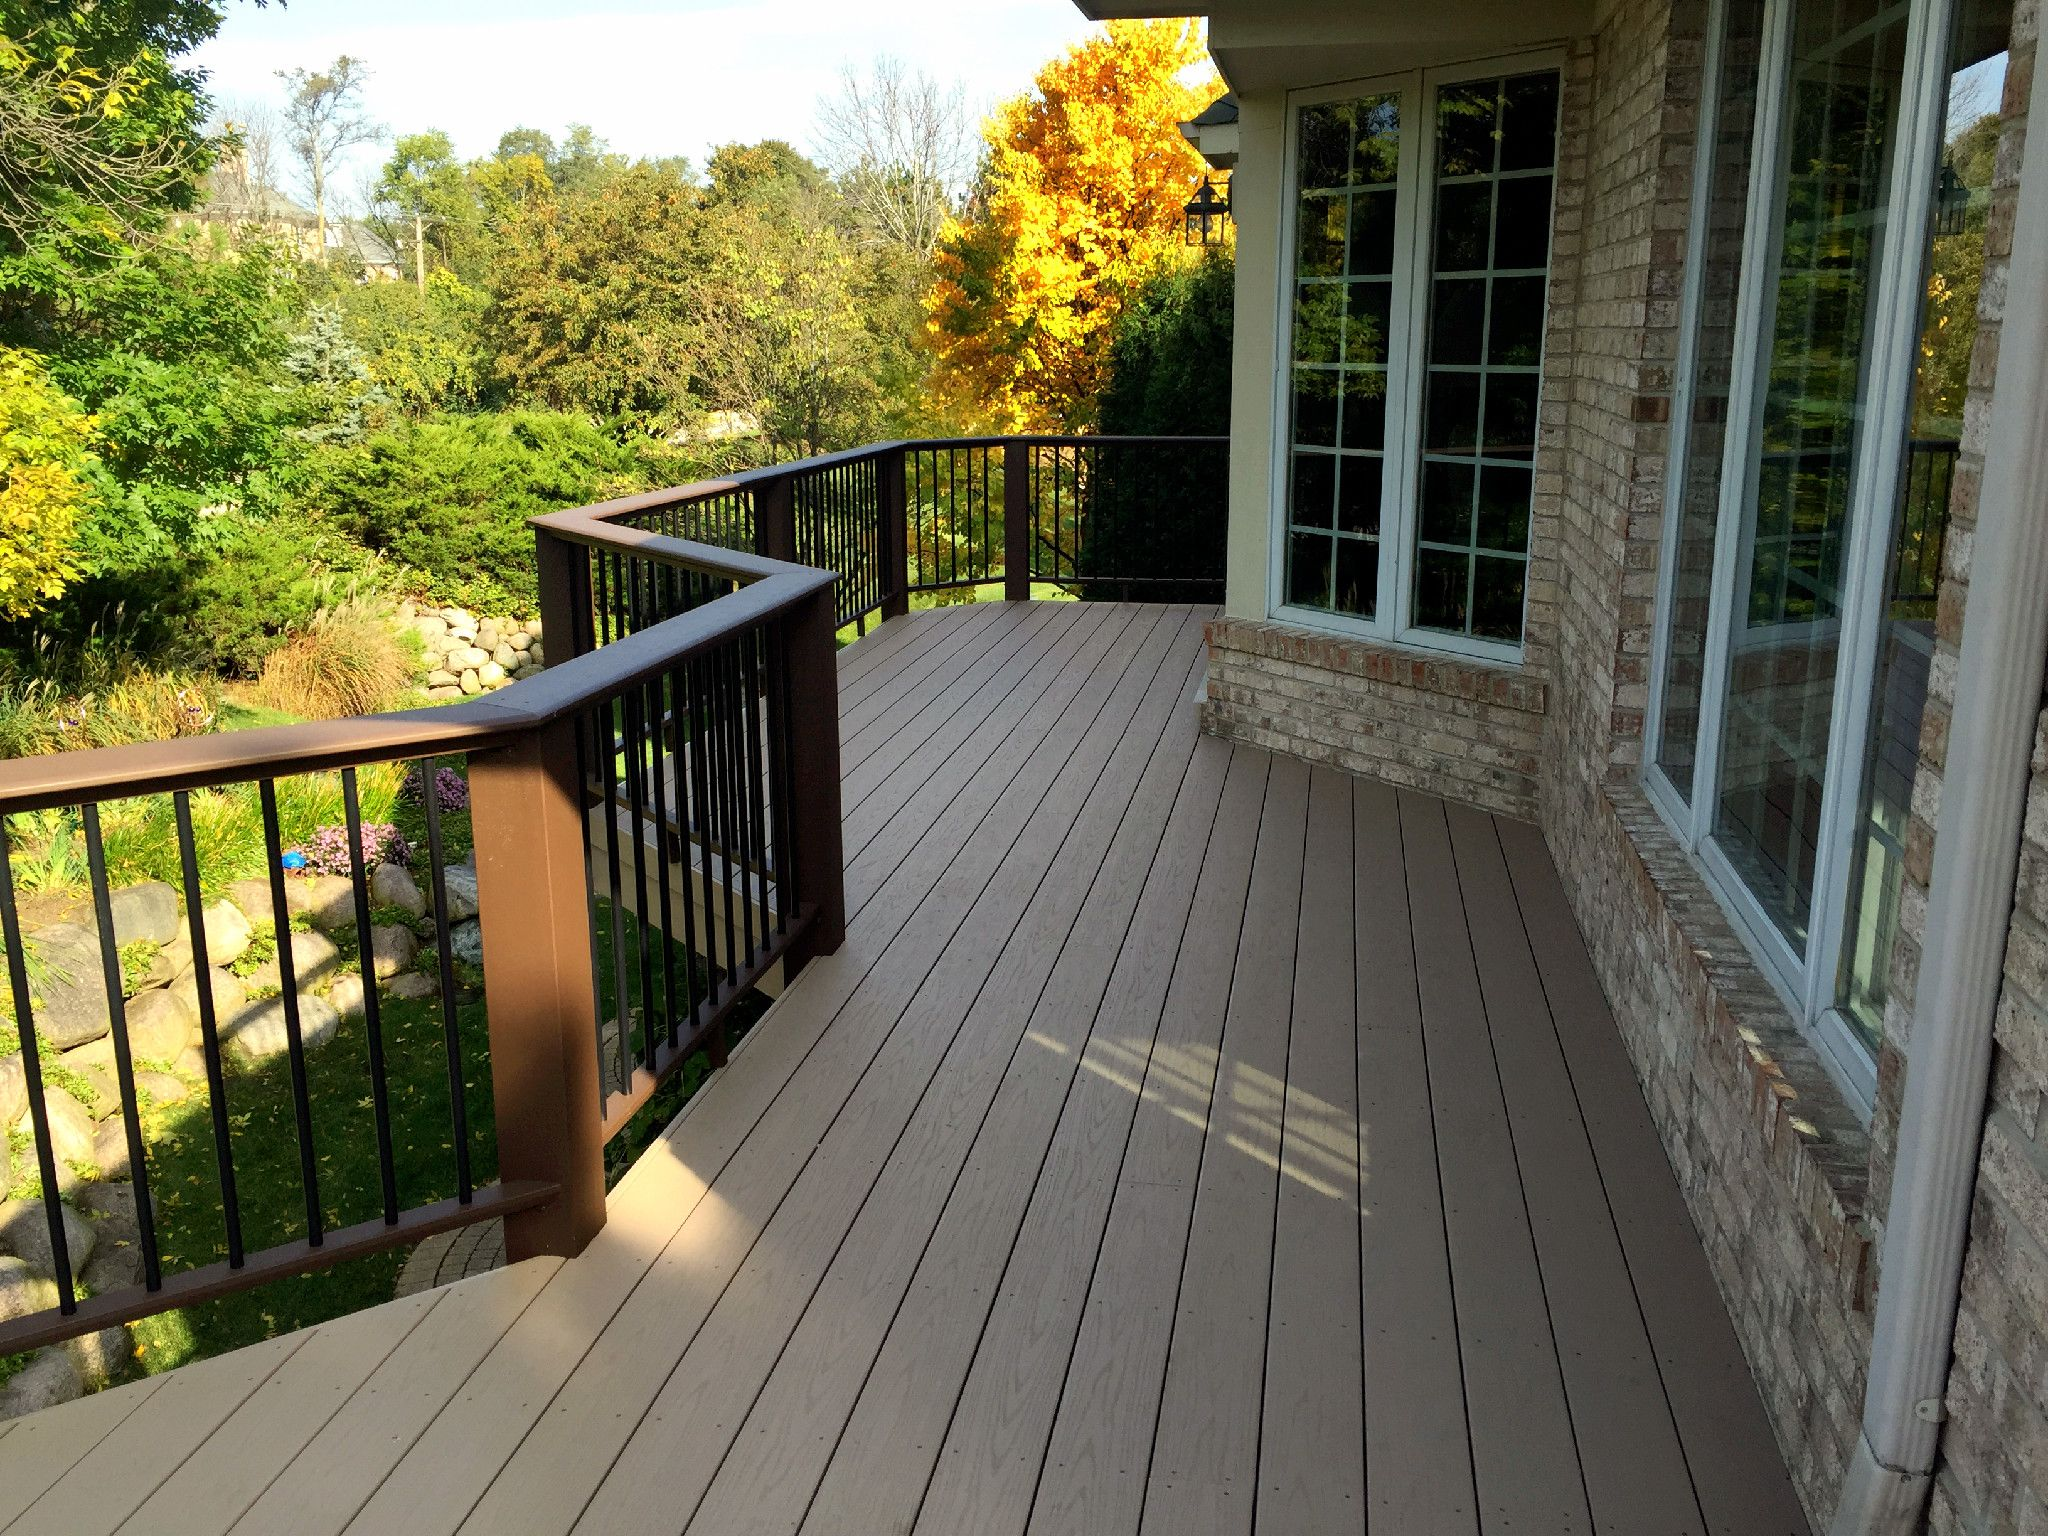 posite AZEK Deck with TimberTech Evolutions Contemporary Rail